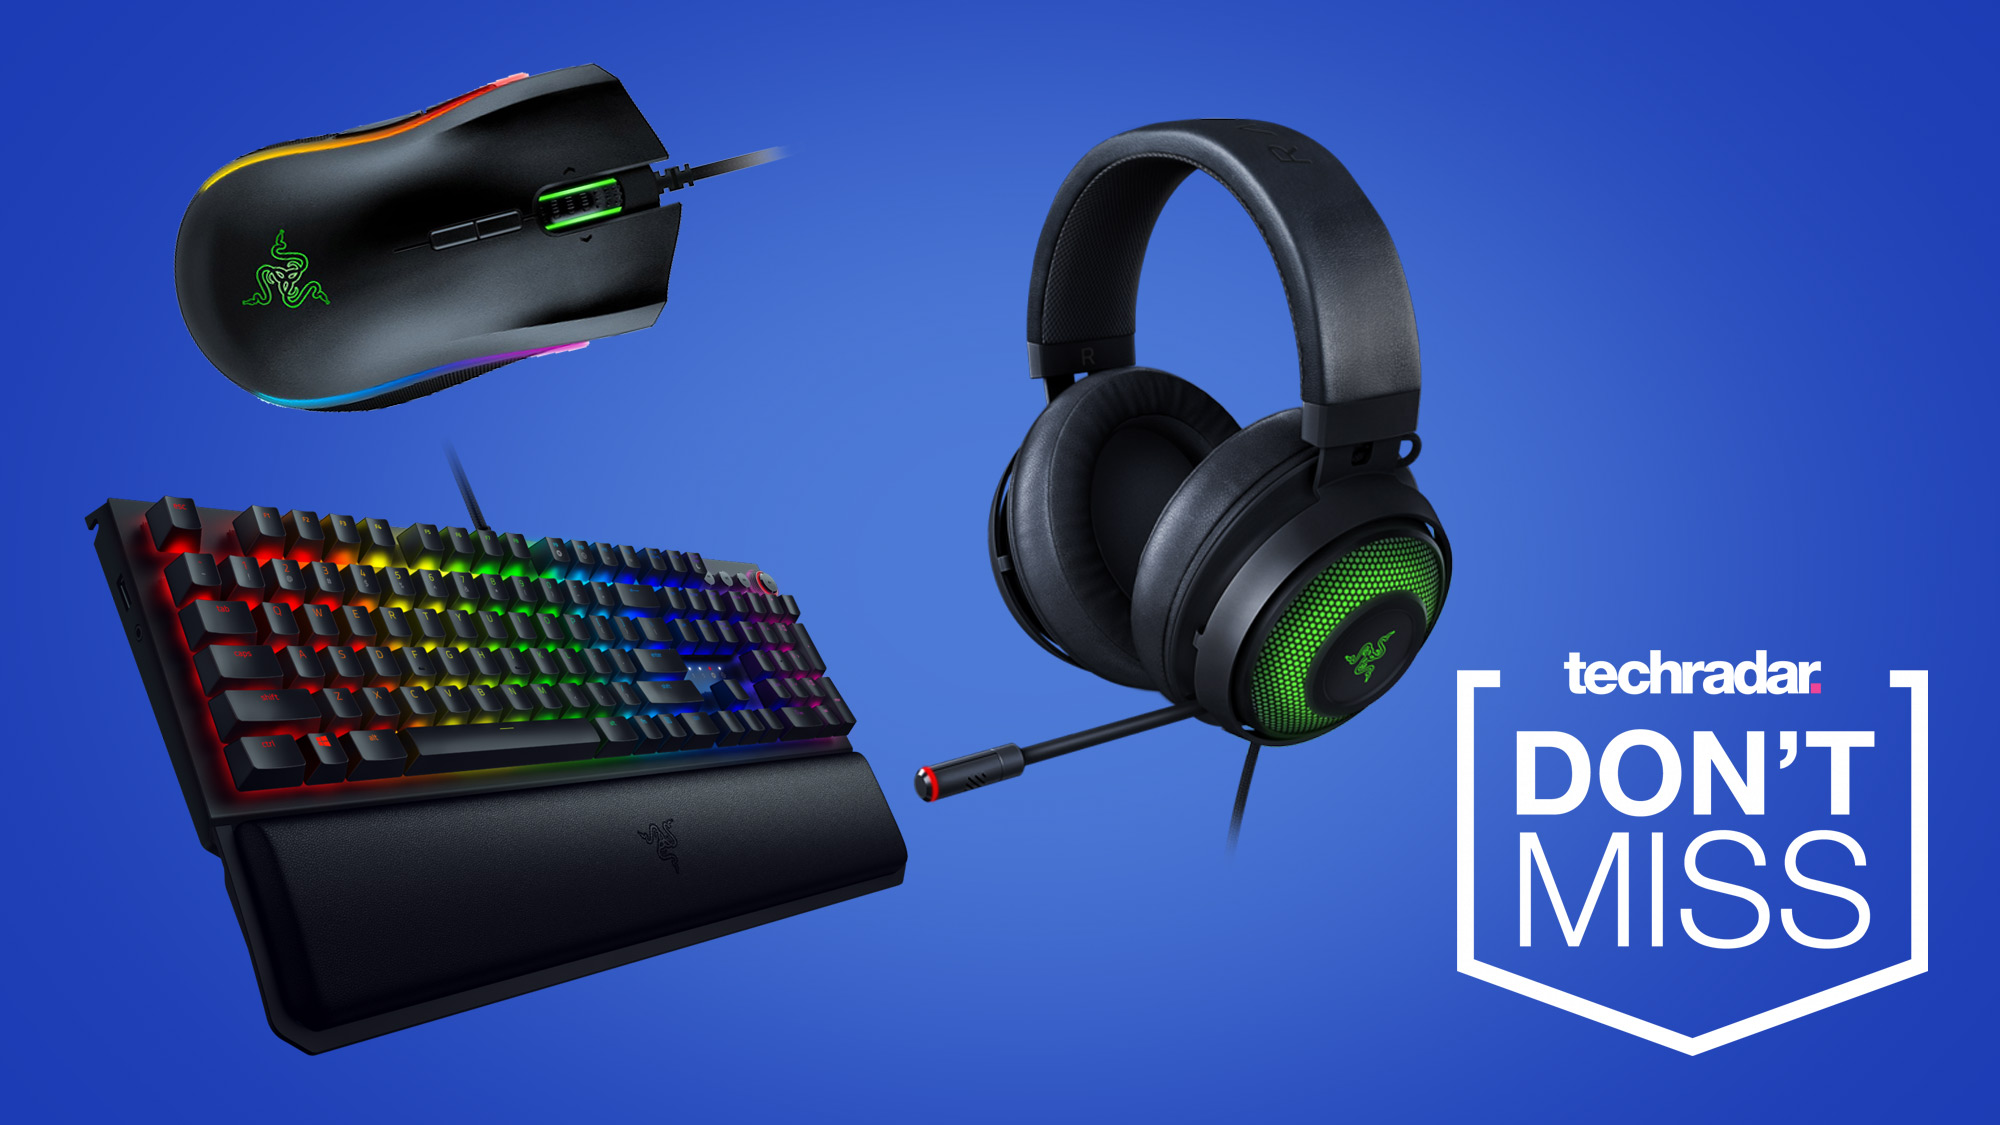 These Razer PC gaming deals have never been cheaper